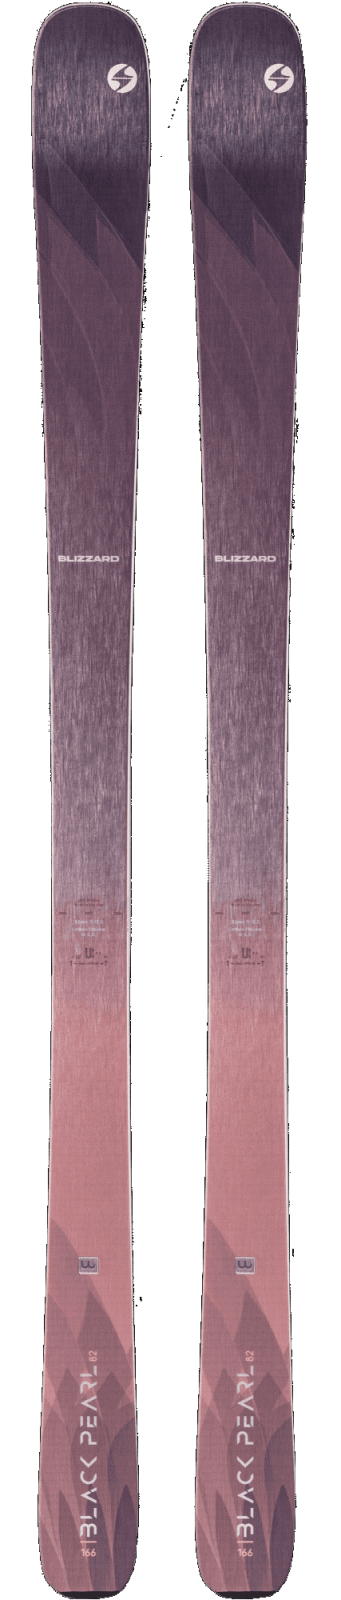 Blizzard Black Pearl 82 Skis 2020